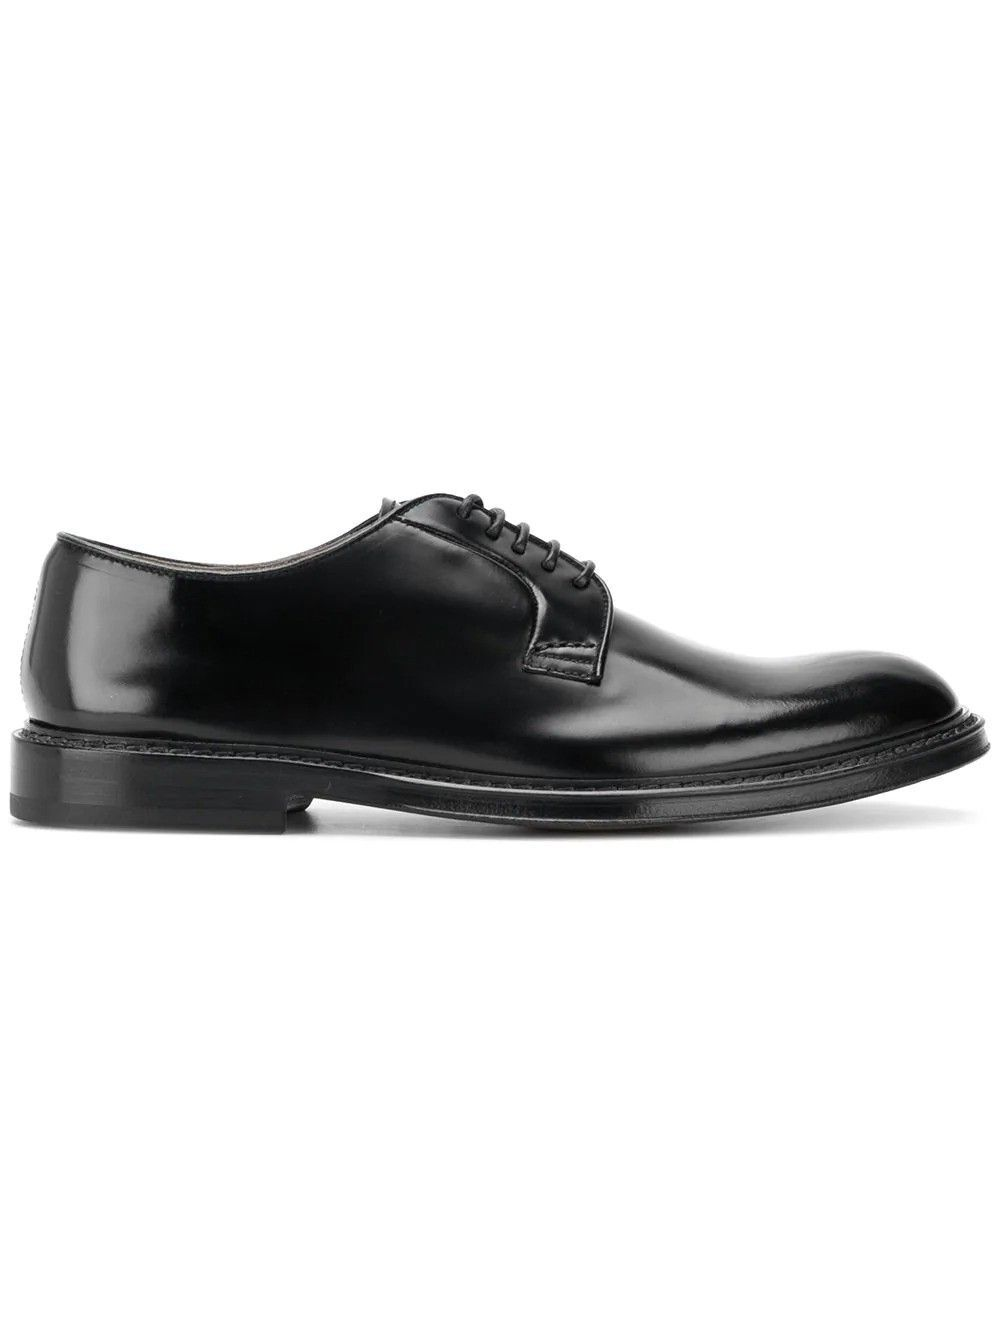 DOUCAL'S MEN'S DU1385PHOEUY007NN00 BLACK LEATHER LACE-UP SHOES